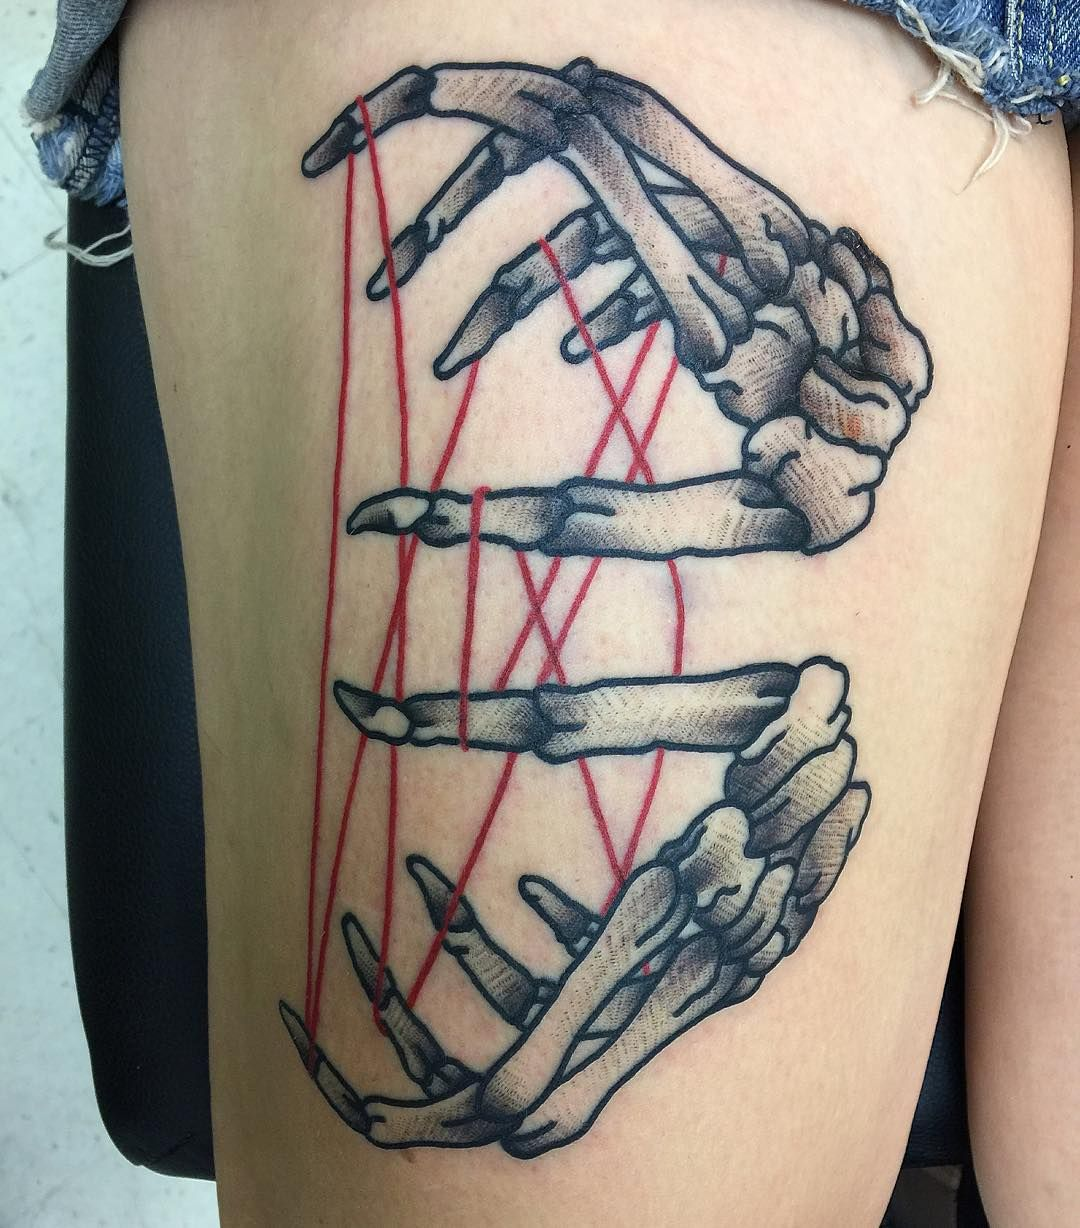 Skeleton Hands Playing Cats Cradle Tattoo By Isaiah Toothtaker Toothtaker At Staring Without Caring In Tuscon Az Hand Tattoos Skeleton Hand Tattoo Tattoos